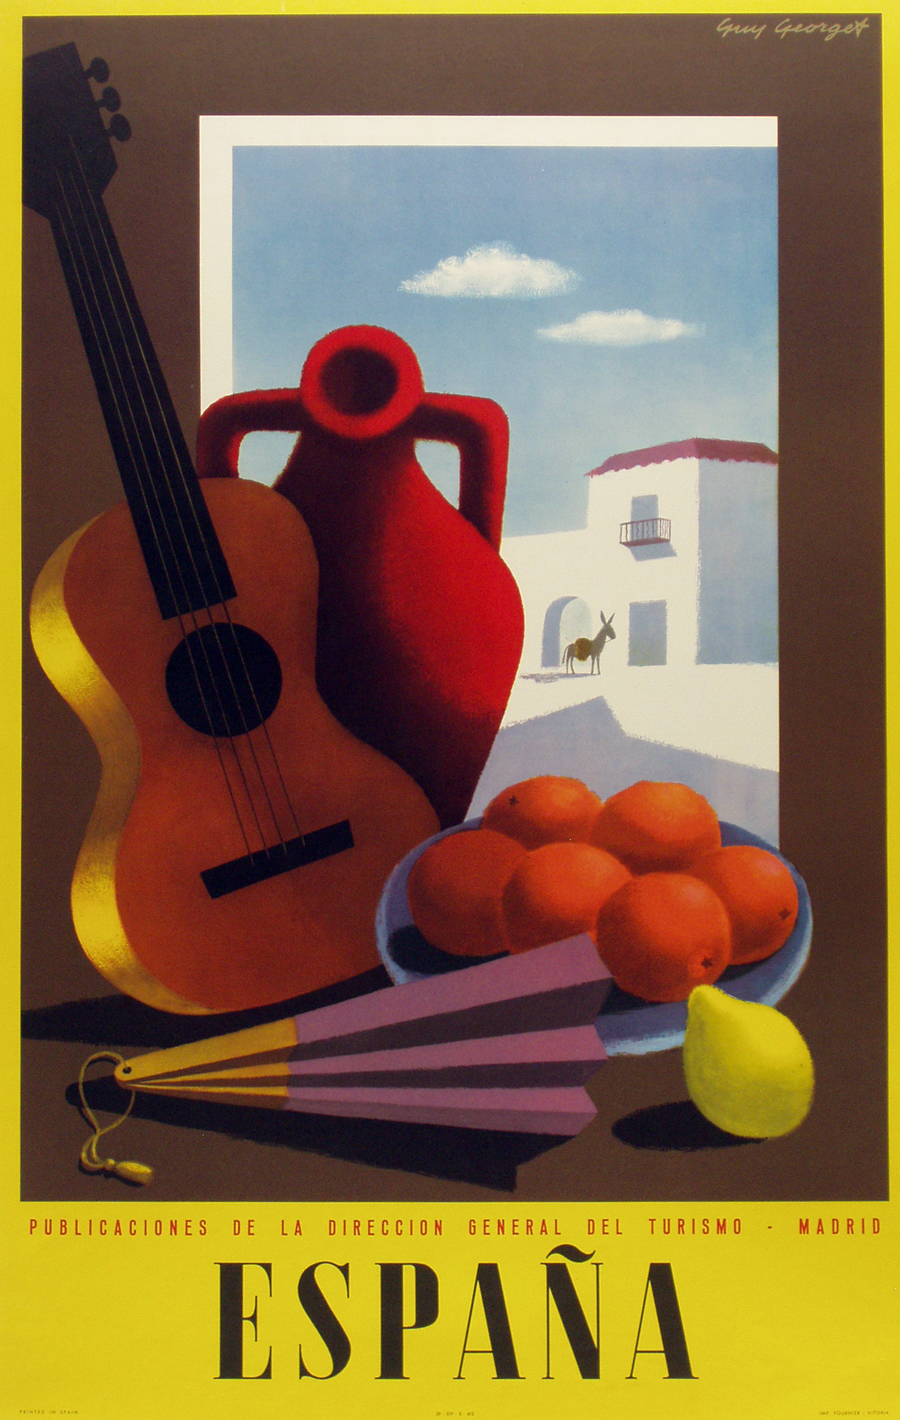 A short biography of guy georget vintage european posters - Art deco espana ...